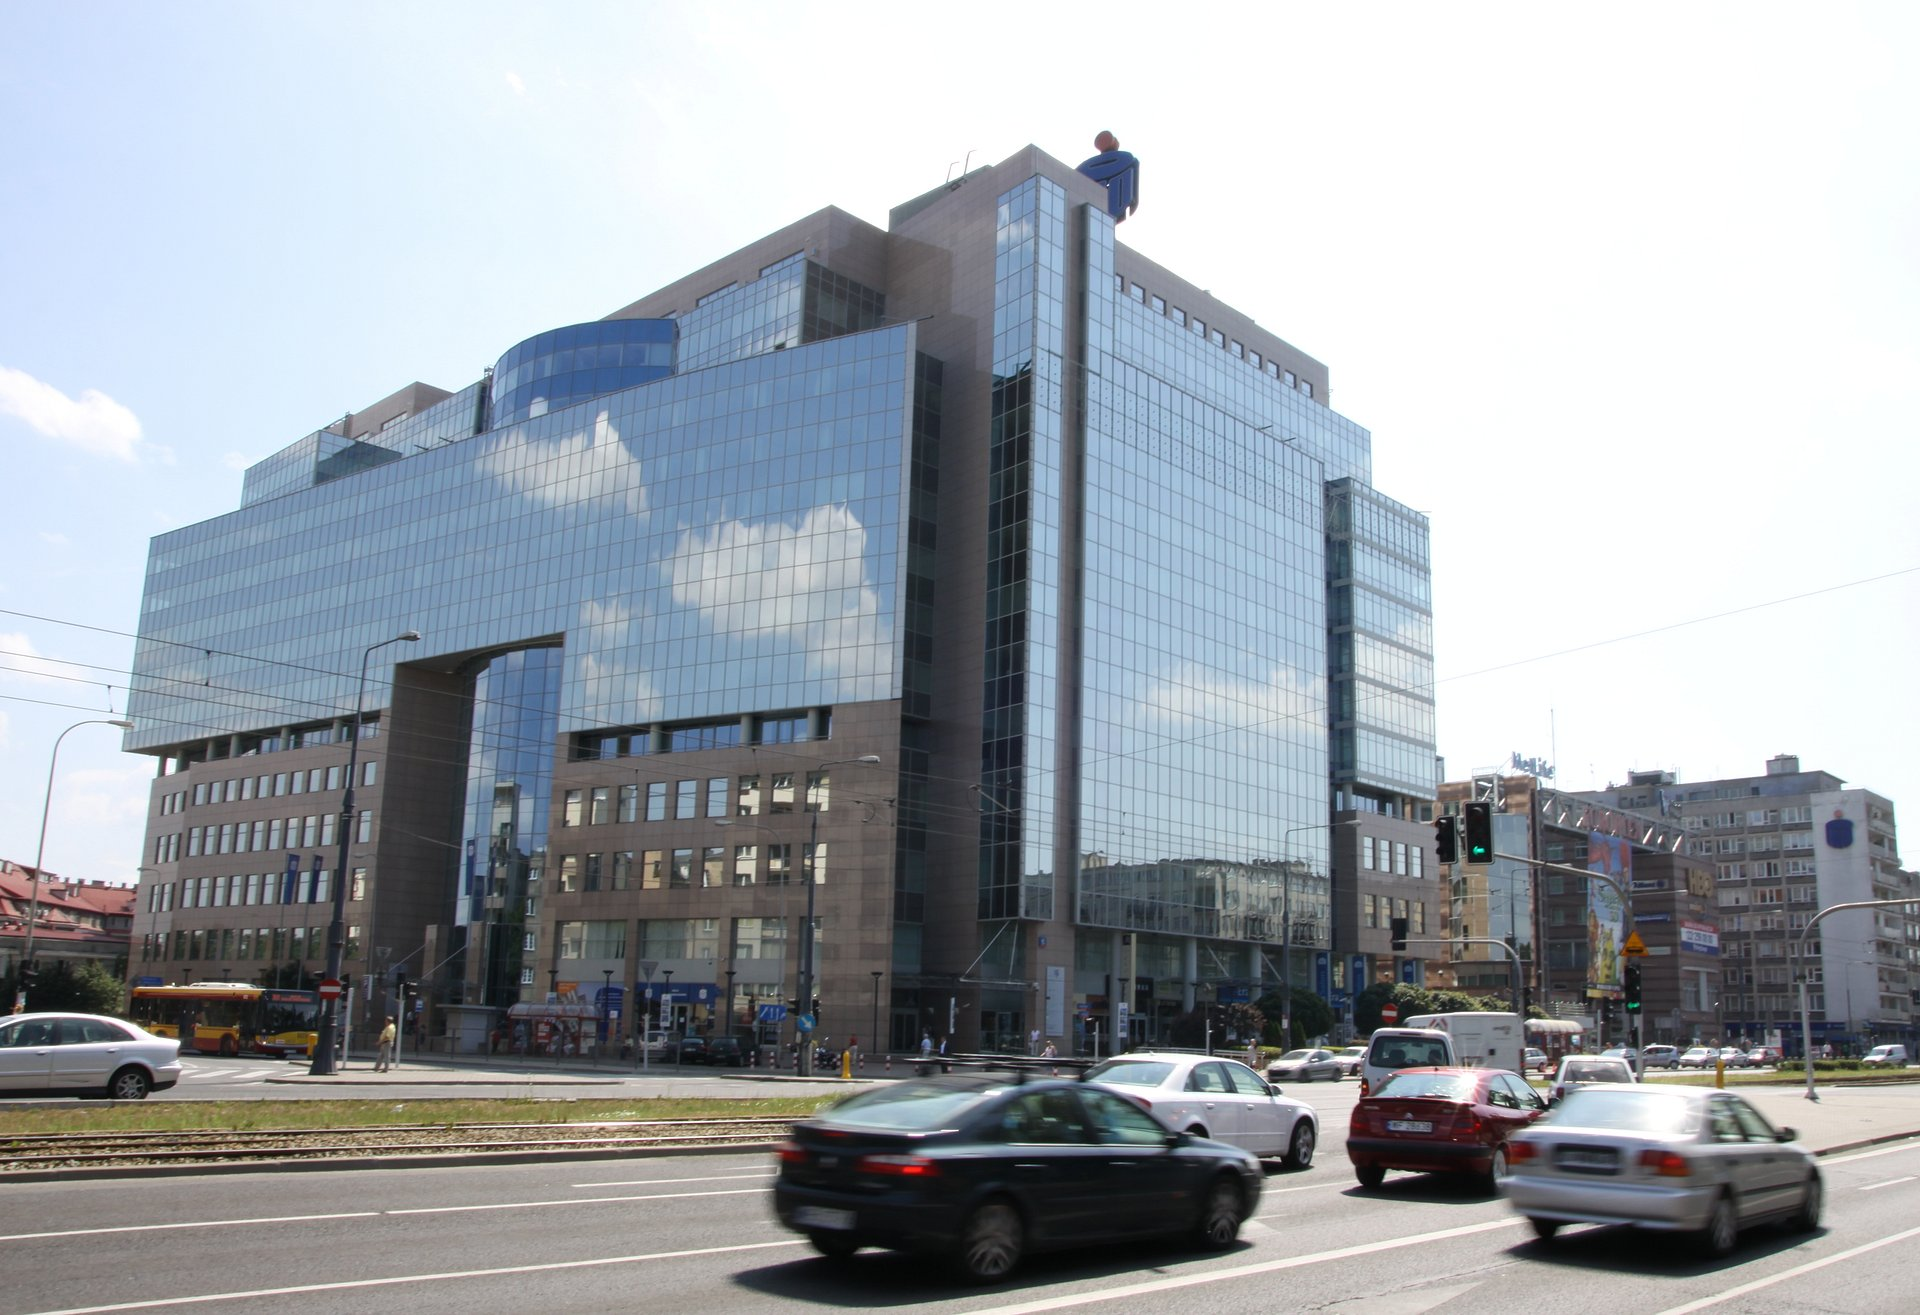 PKO BANK POLSKI CONFIRMS HIGH LEVEL OF ITS CAPITAL ADEQUACY RATIO